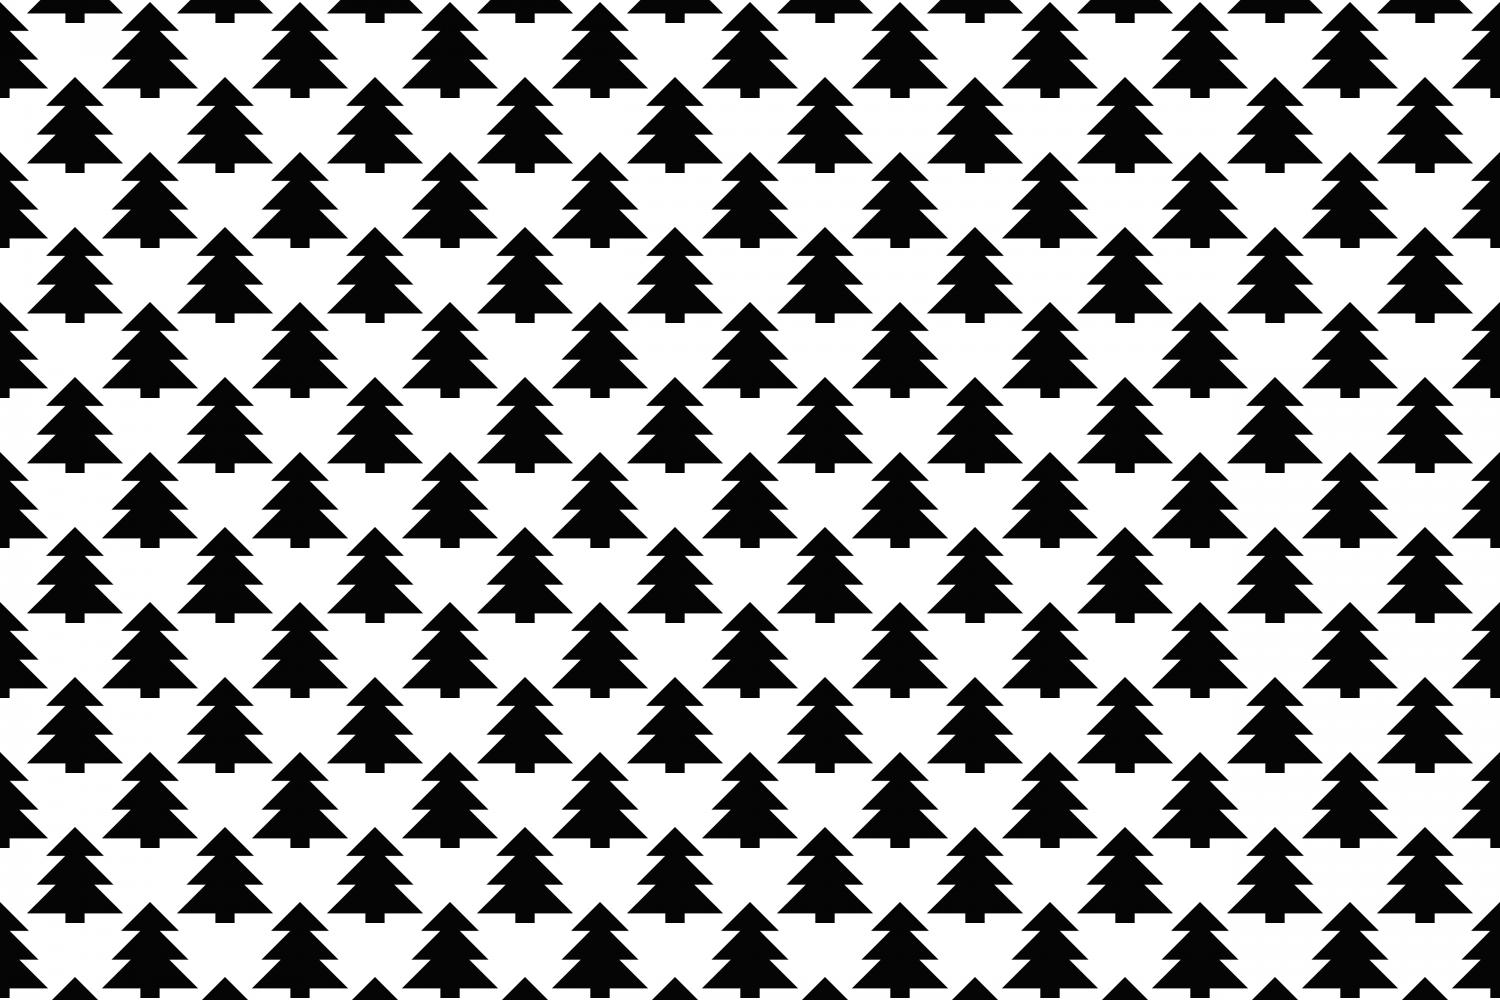 Download Free Monochrome Seamless Winter Pattern Graphic By Davidzydd for Cricut Explore, Silhouette and other cutting machines.